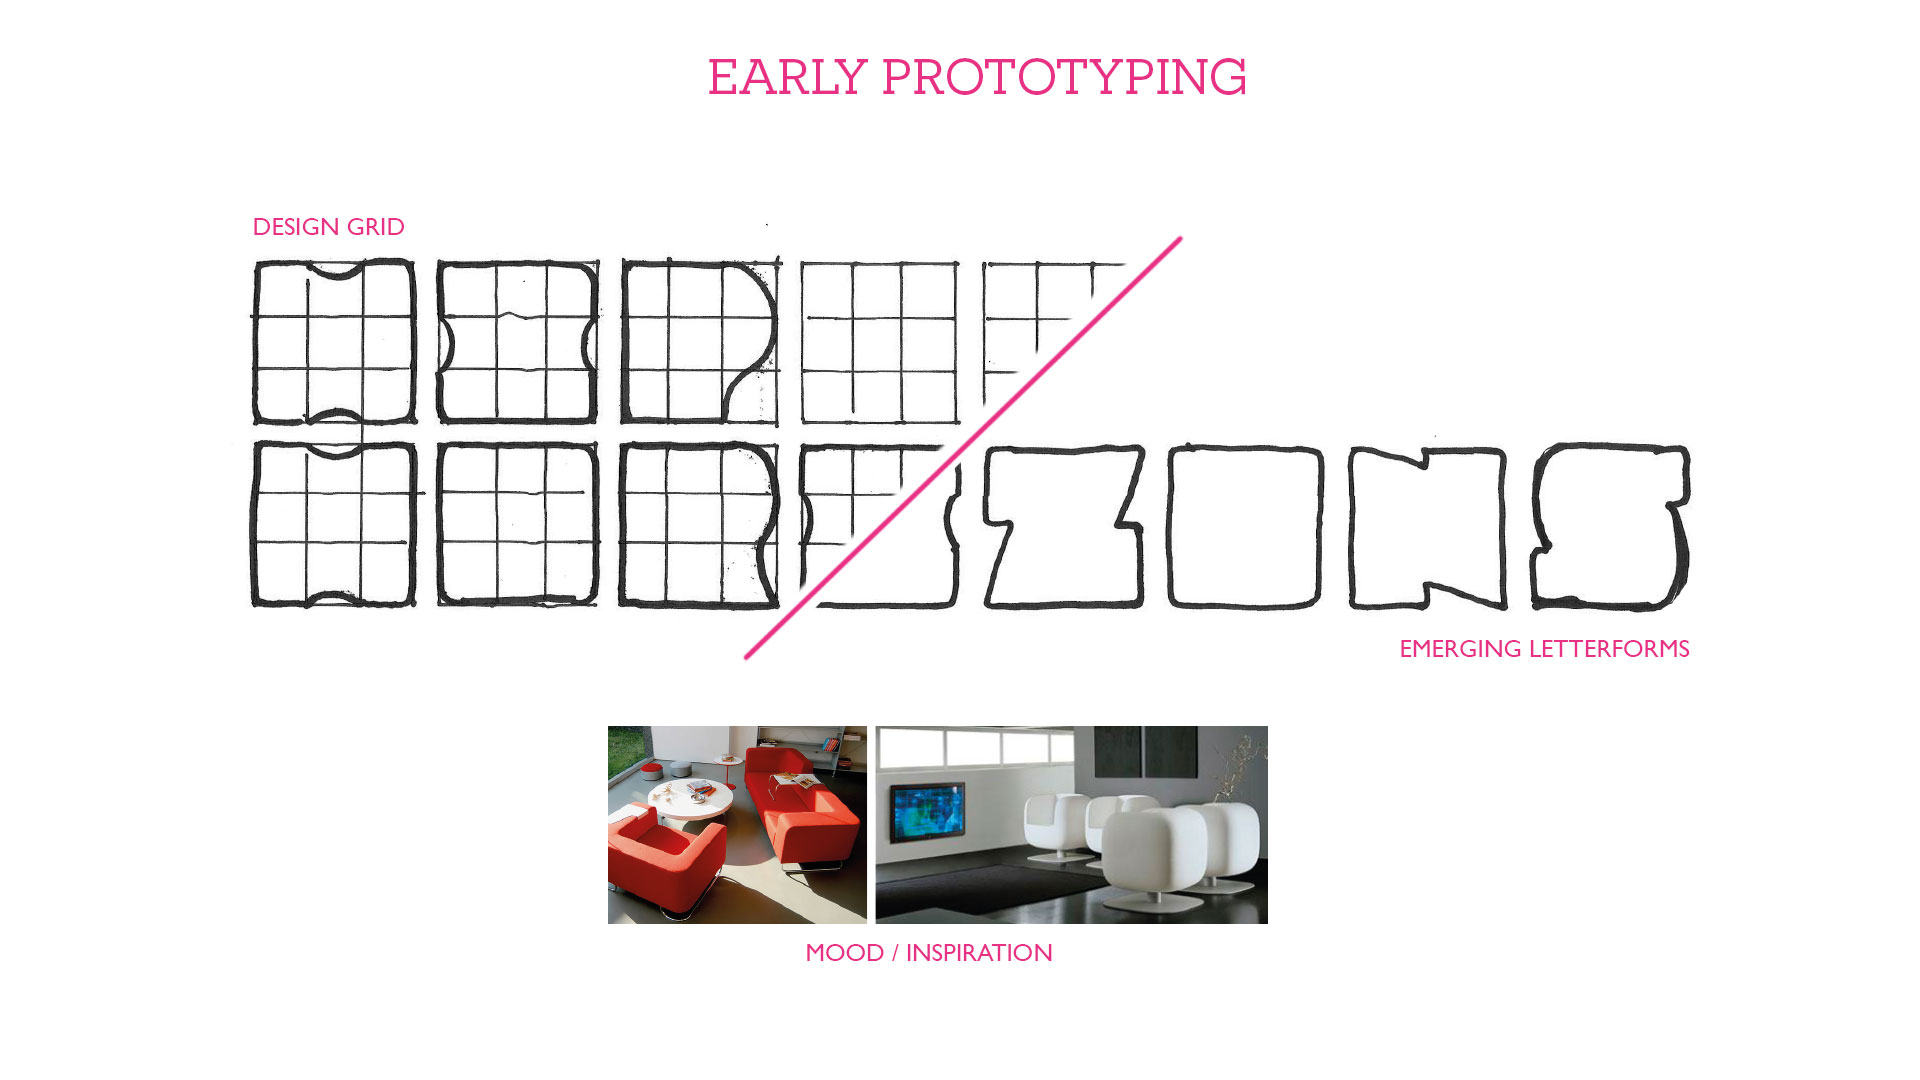 HH_EarlyPrototyping